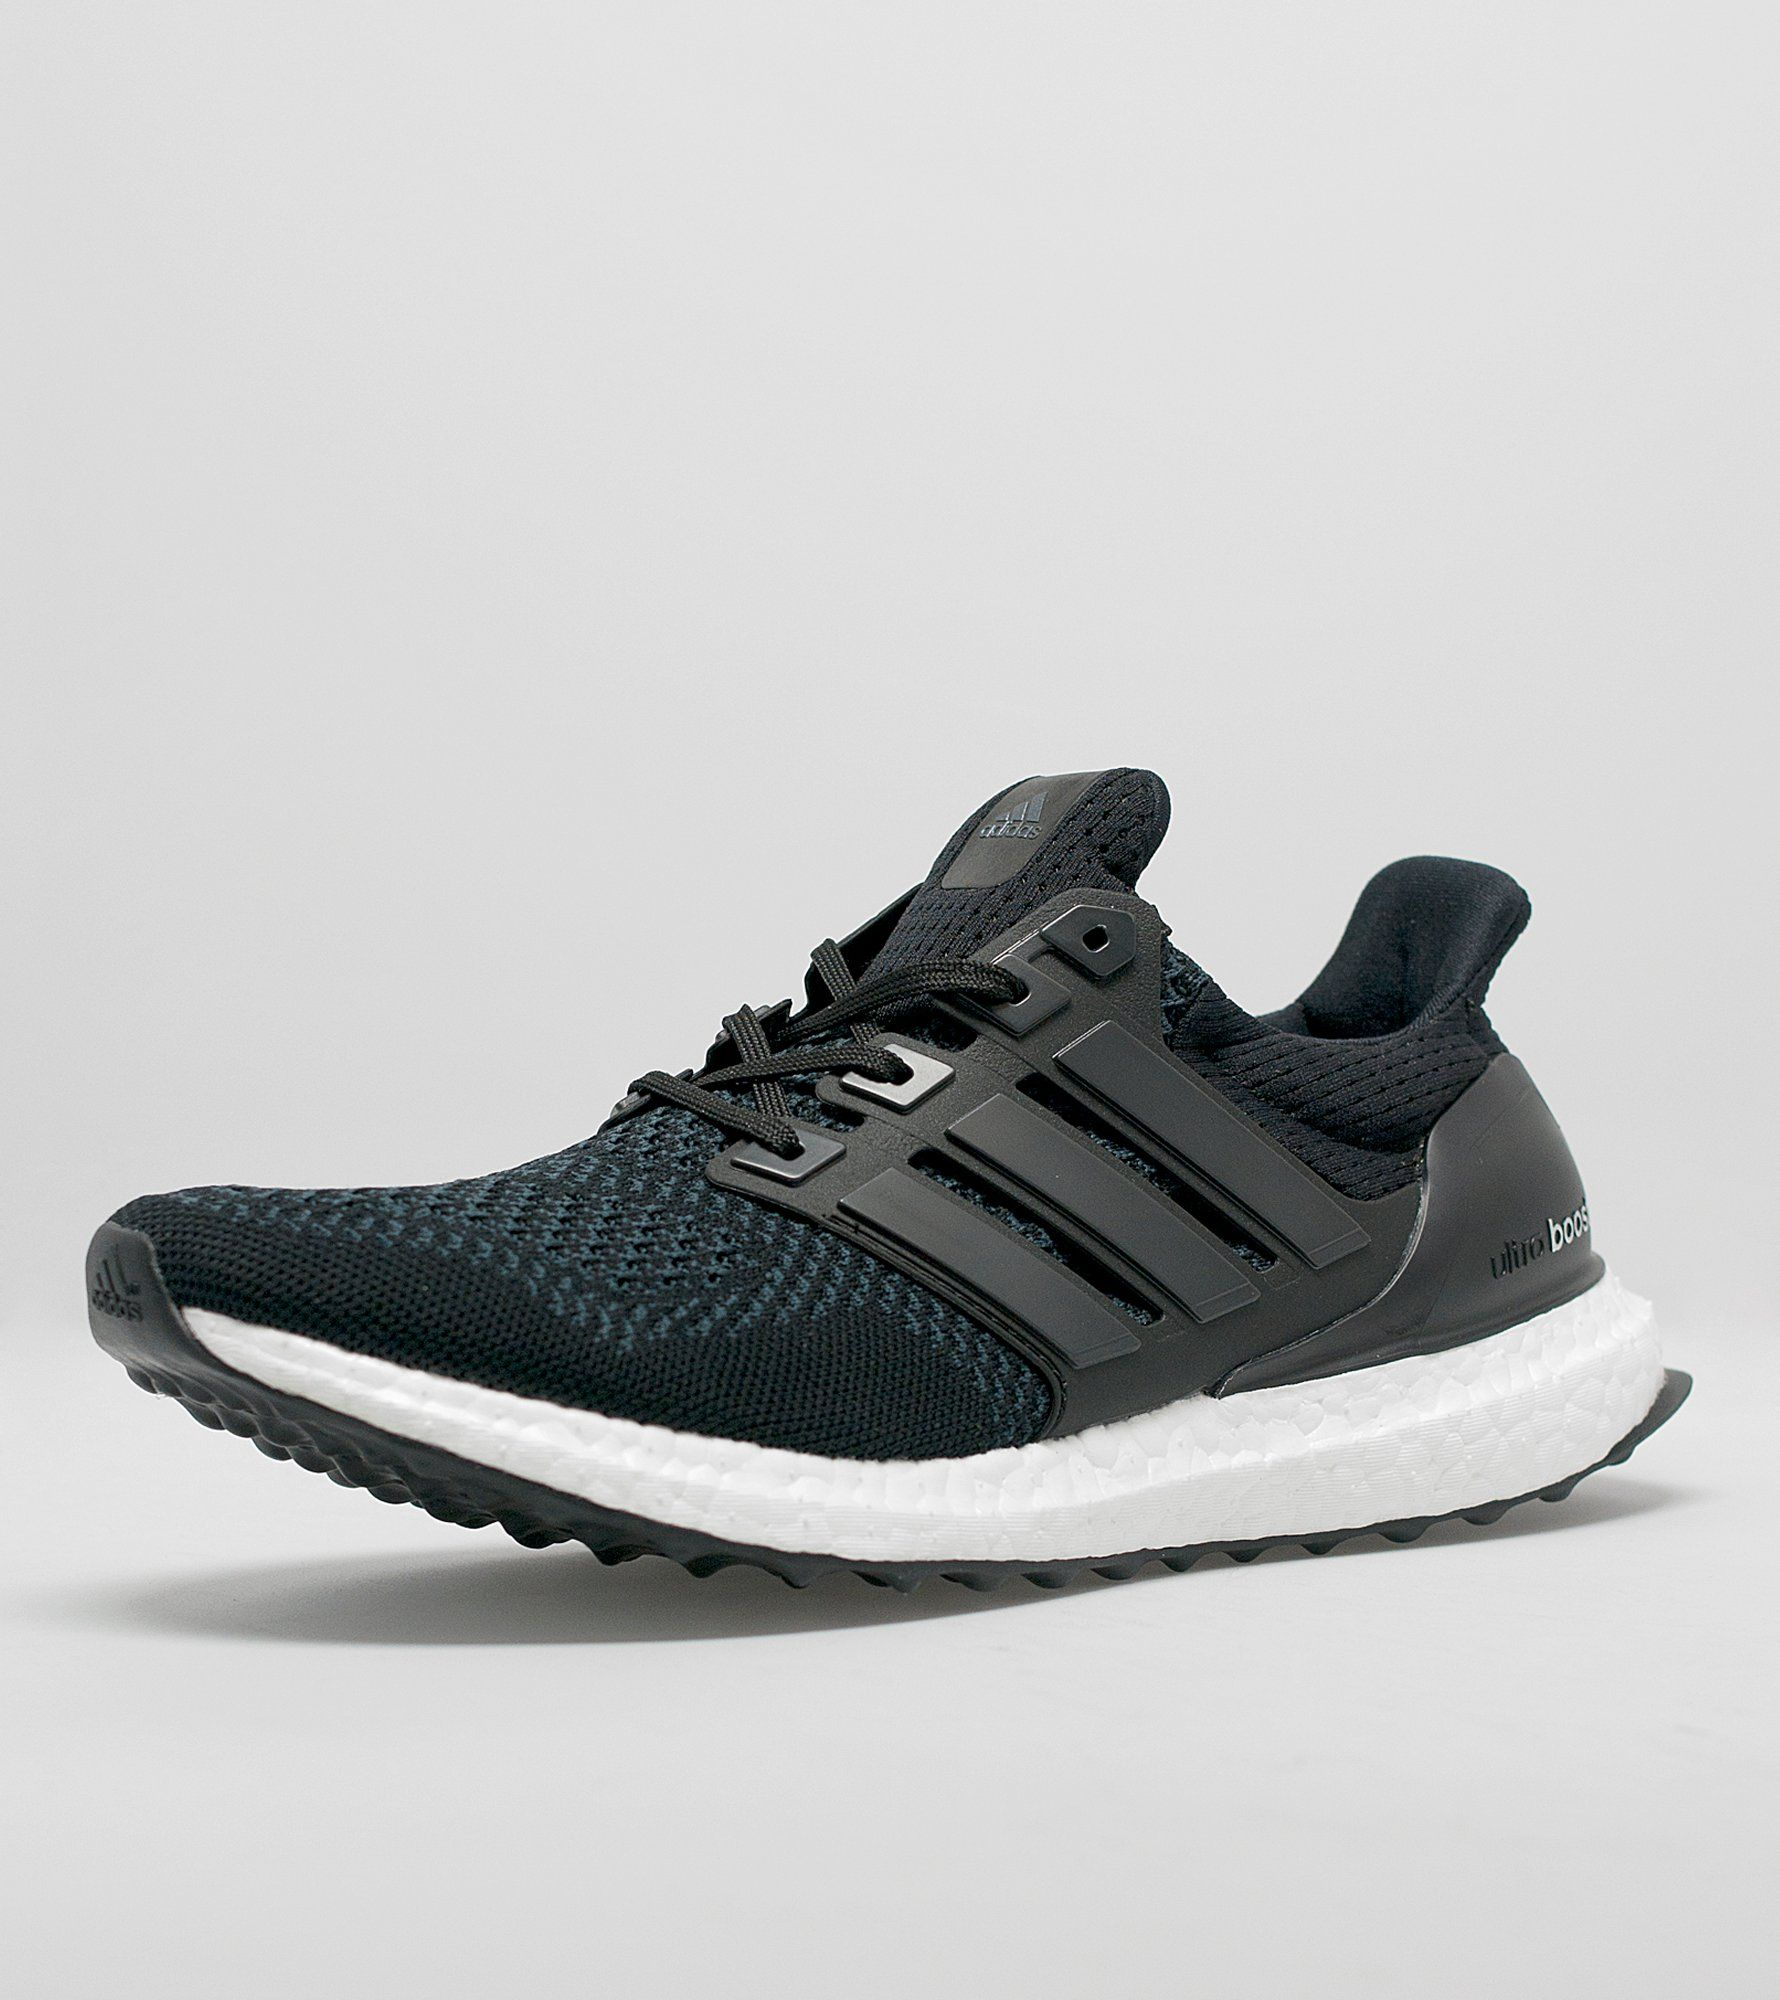 b4cd705cc9ad5 Adidas Ultra Boost V3 wallbank-lfc.co.uk